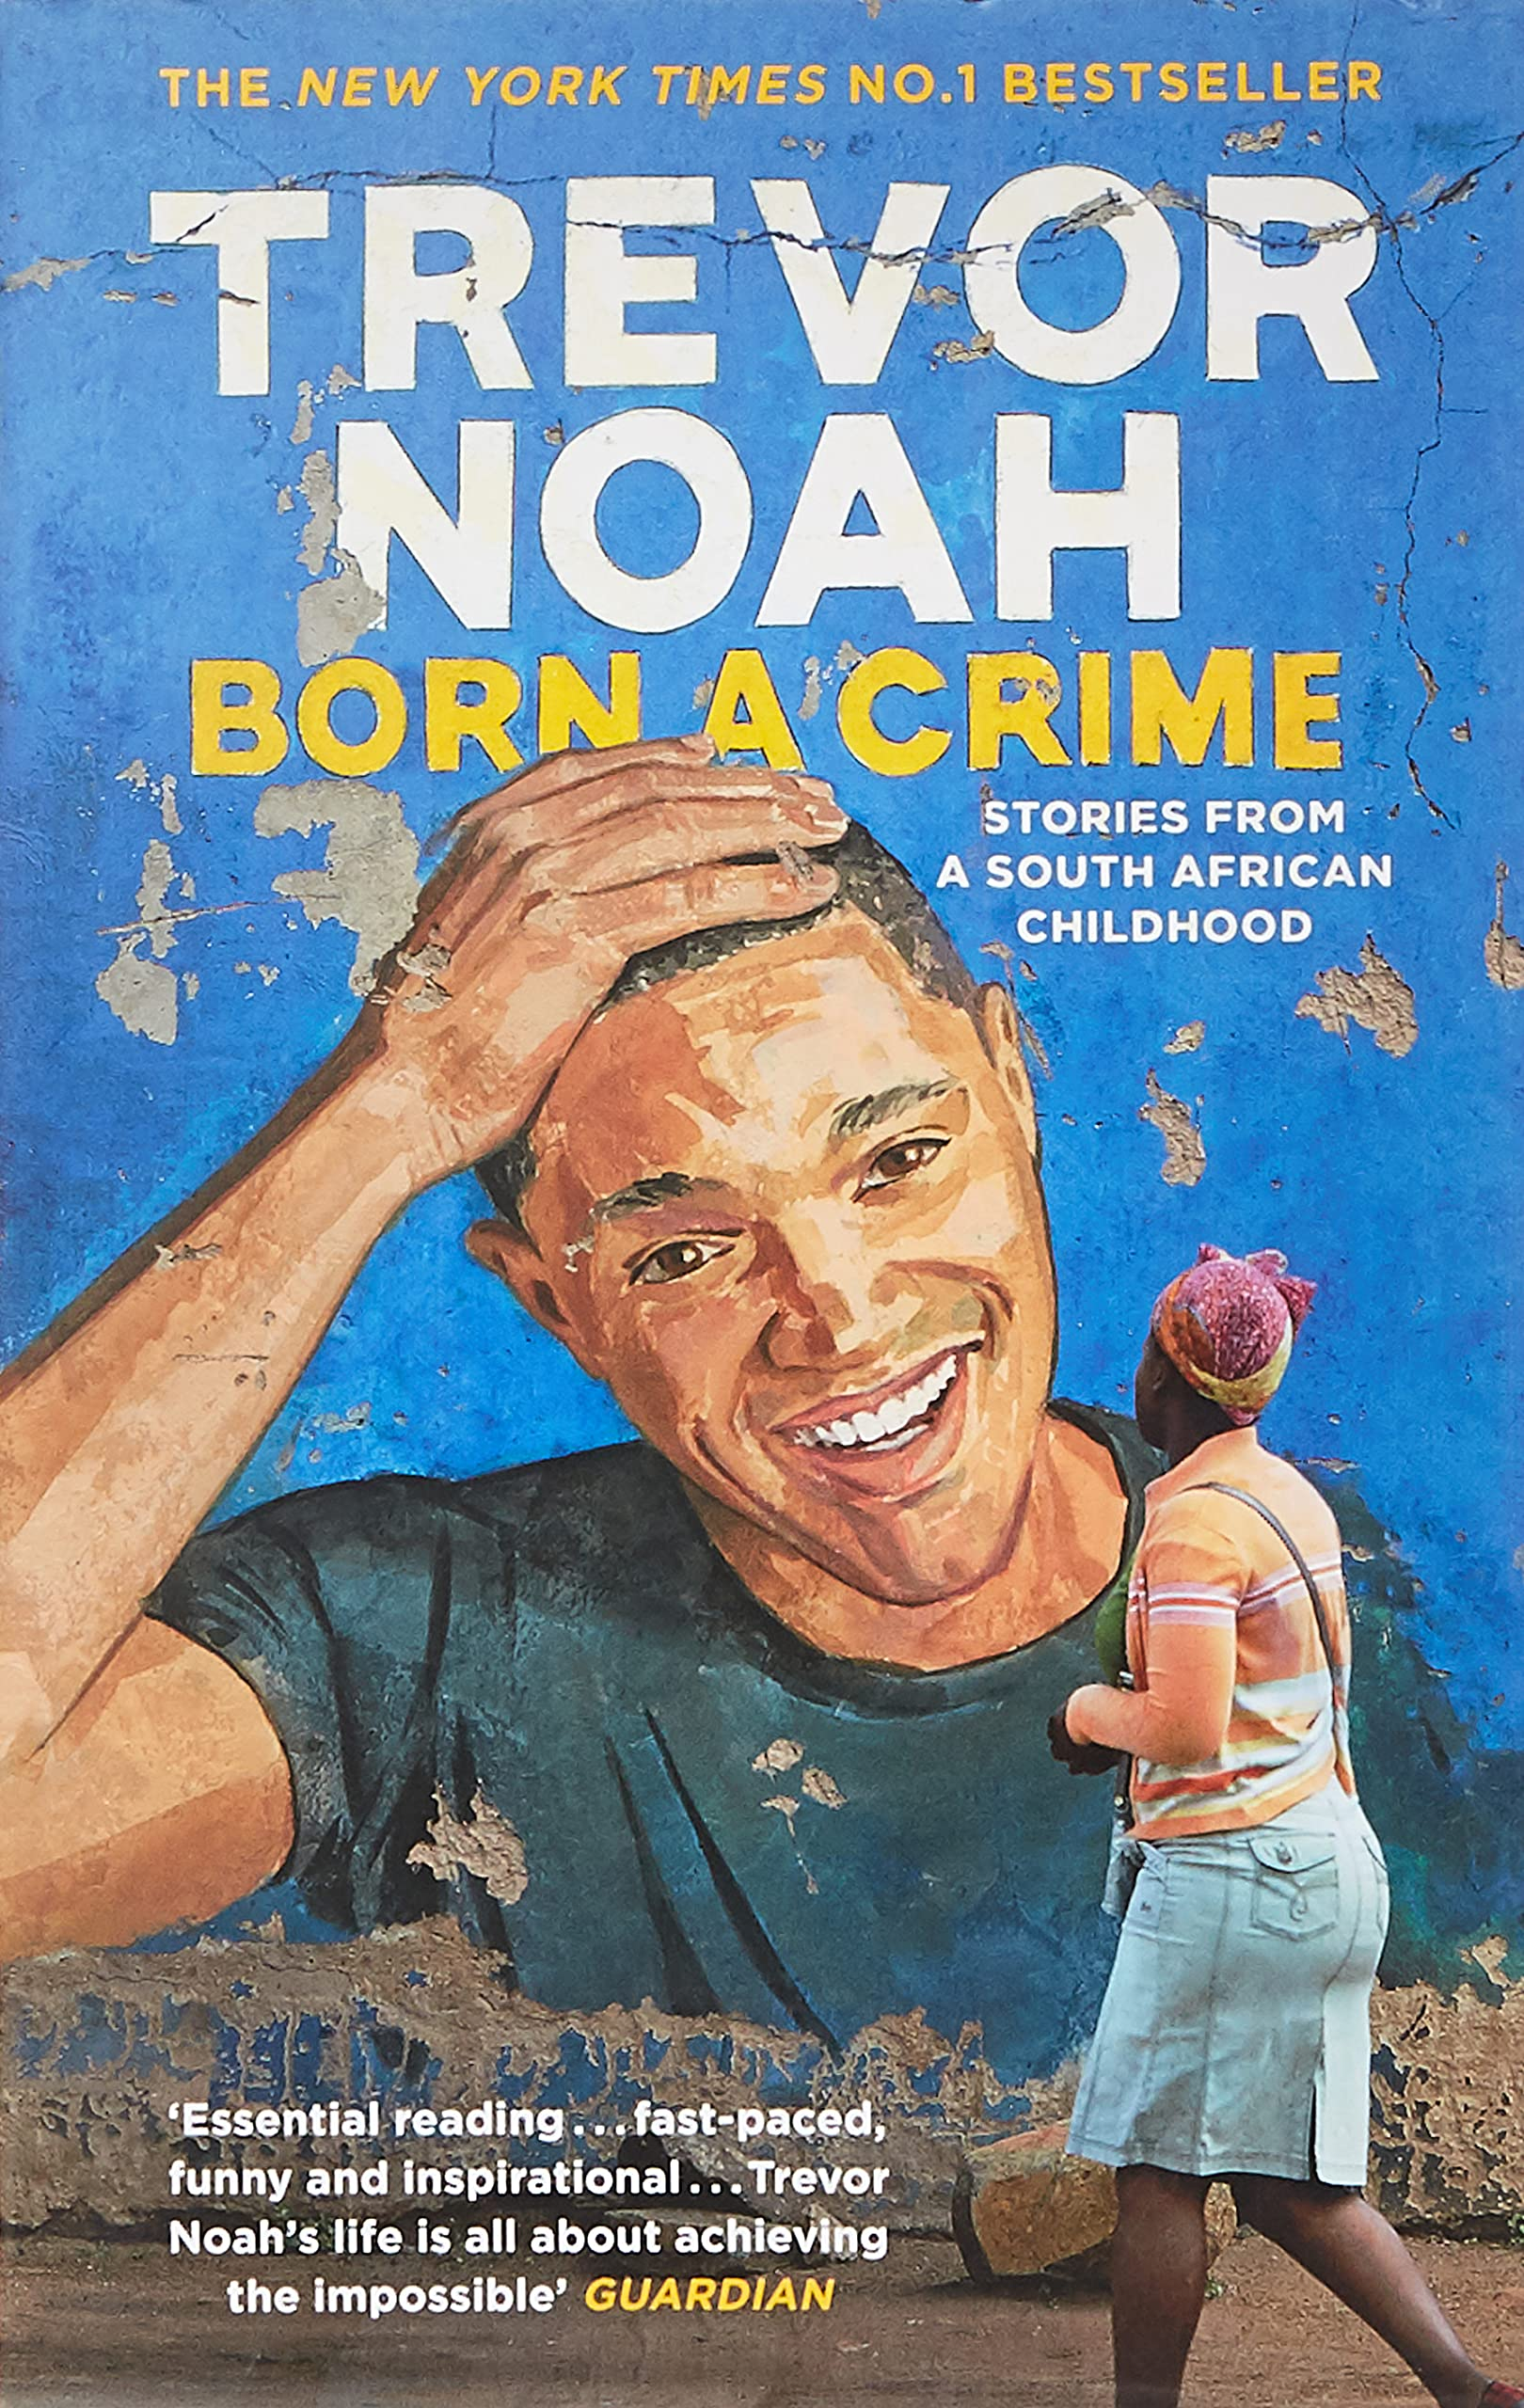 Born a crime book cover showing a lady walking past a mural of Trevor Noah with his hand on his head